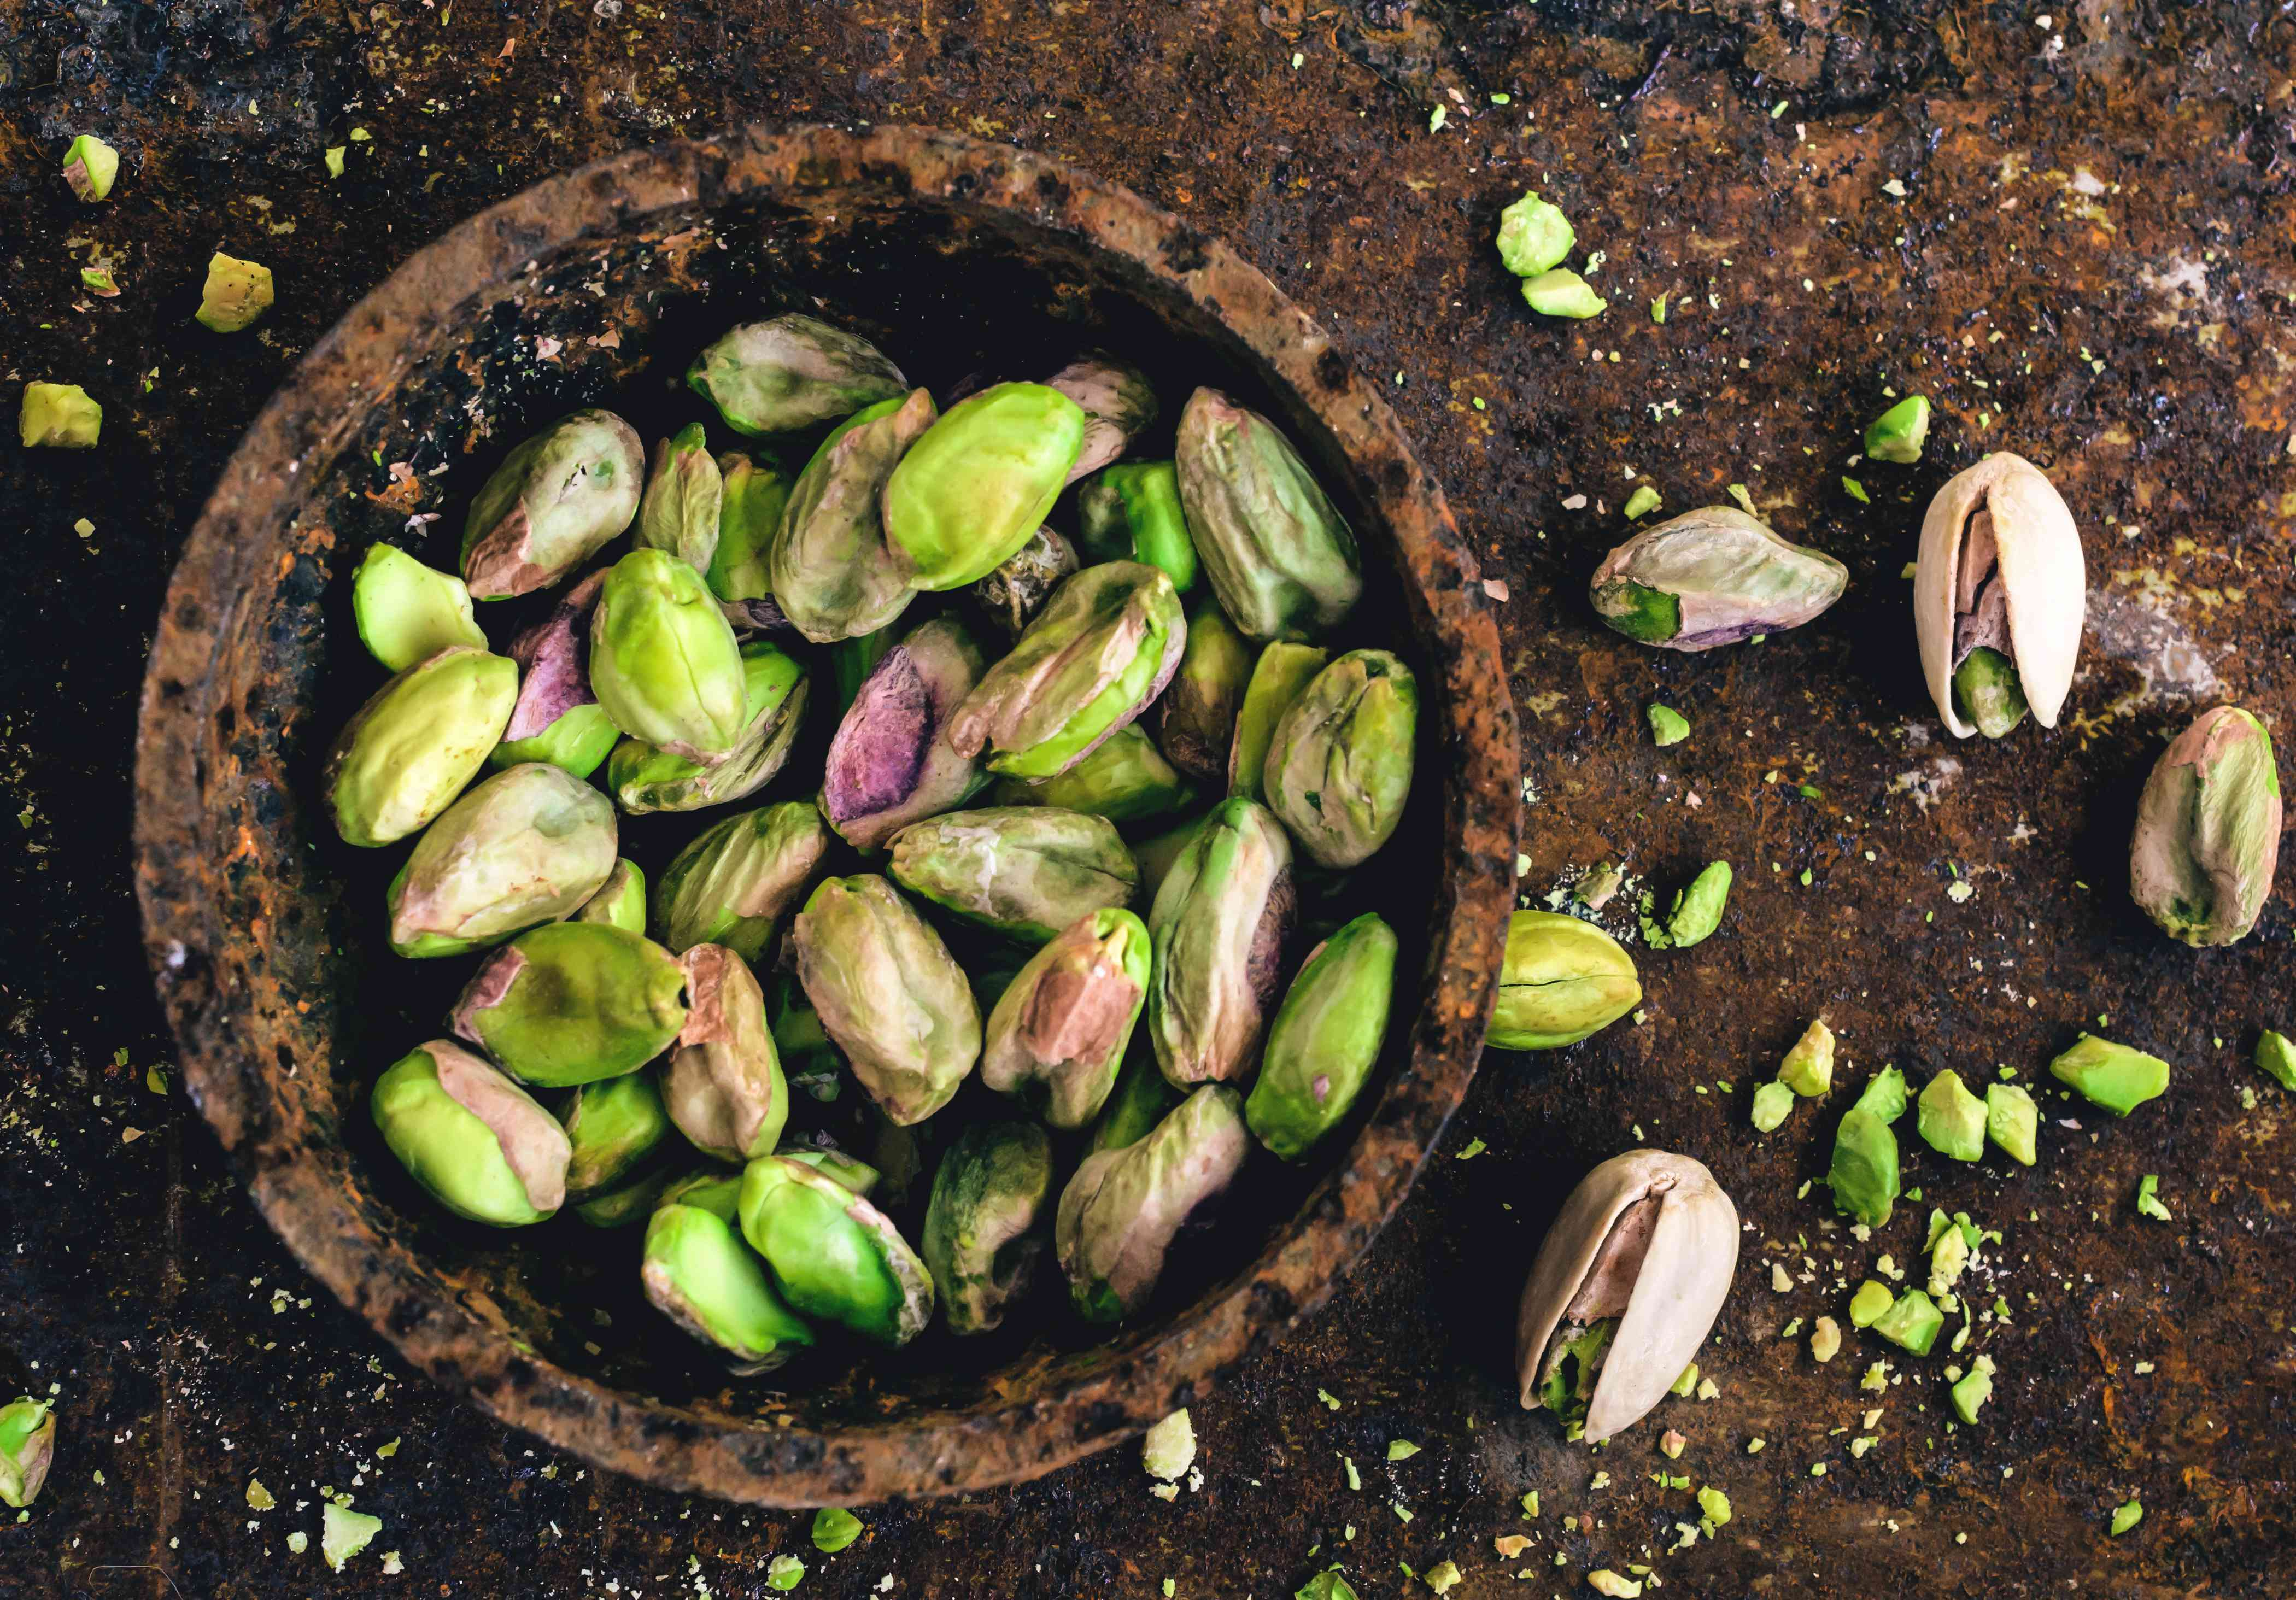 Pistachio nuts in a bowl sitting on the ground